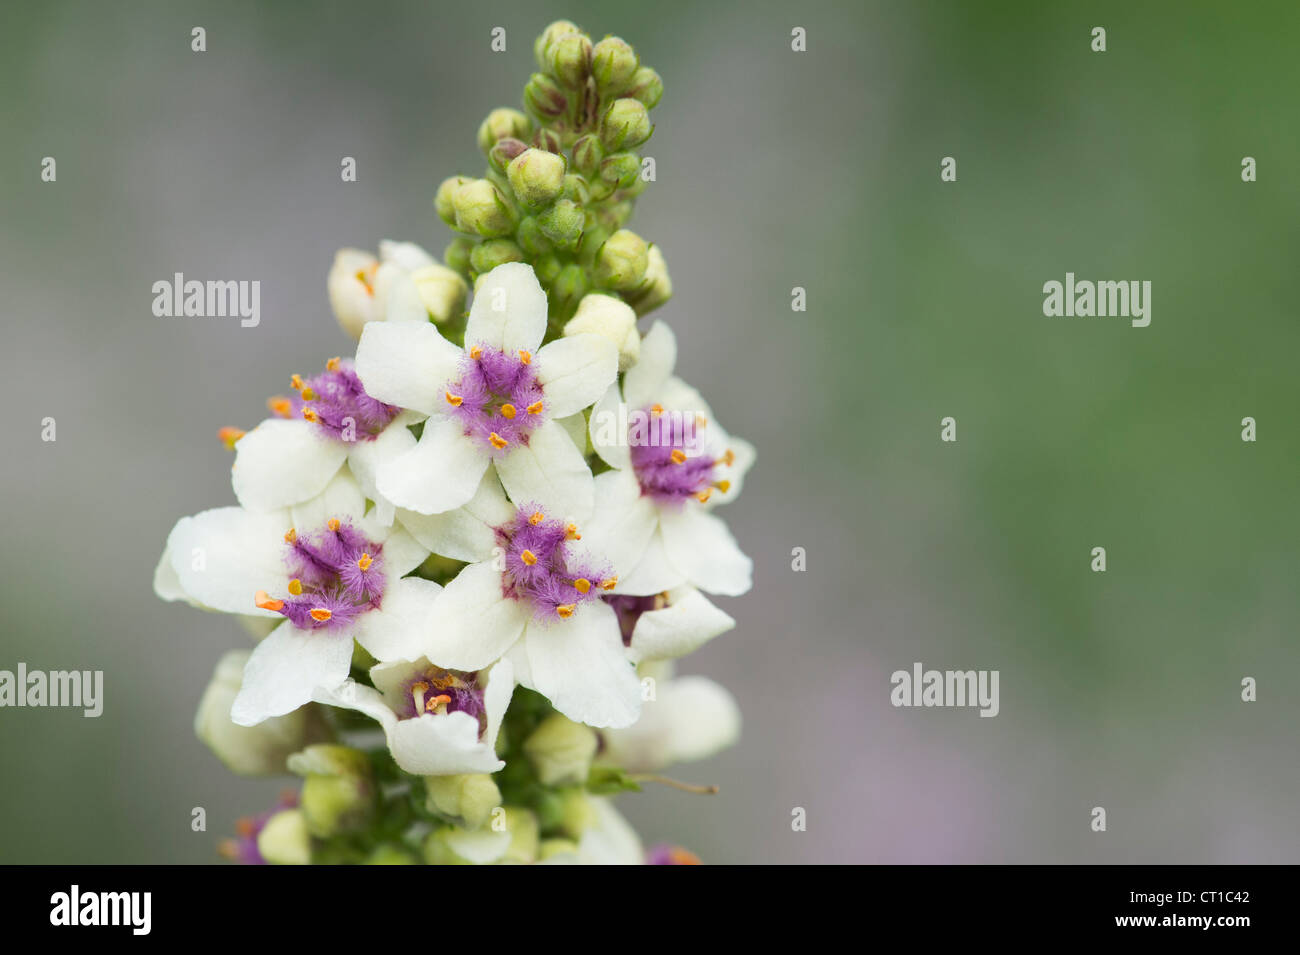 Verbascum chaixii 'Album'. White nettle-leaved mullein - Stock Image